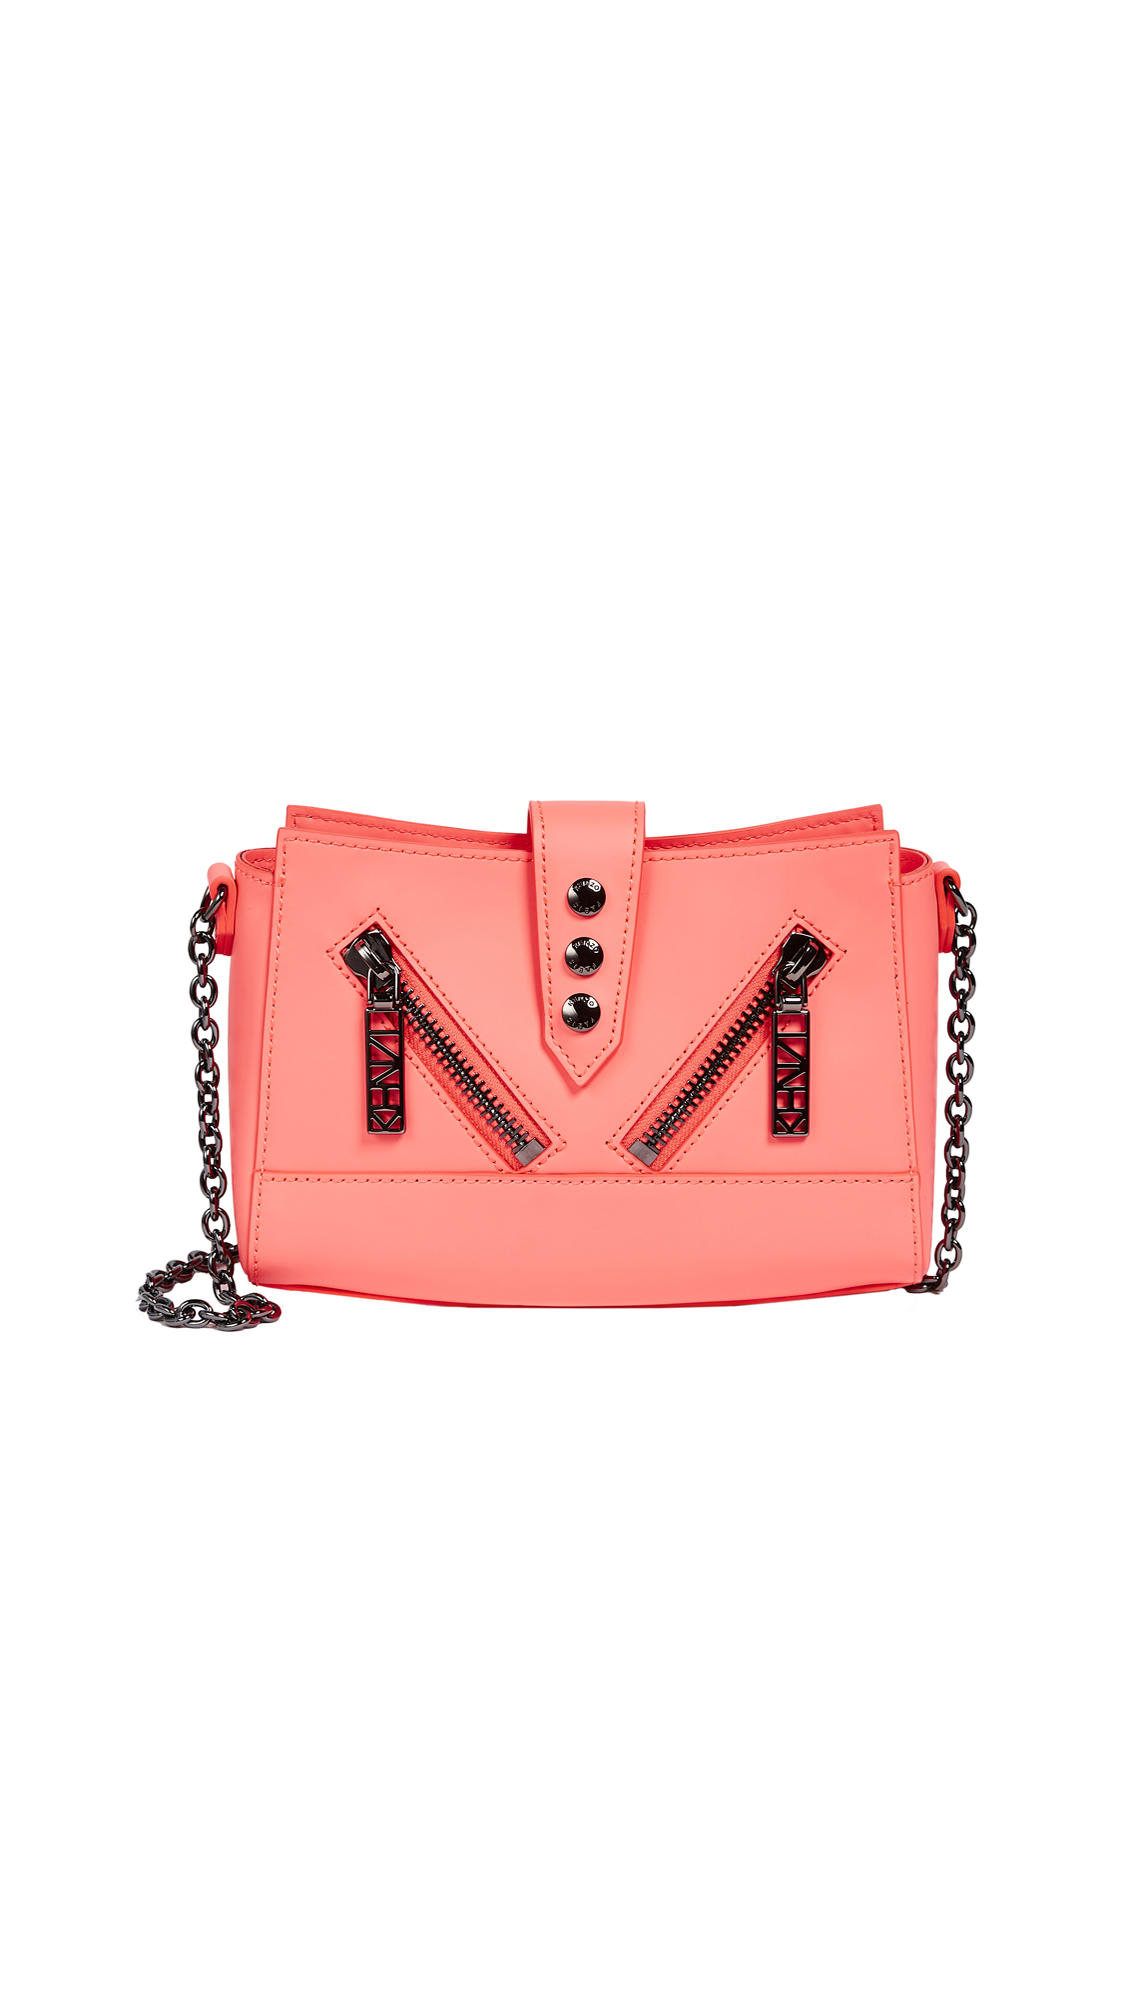 KENZO Kalifornia Cross Body Bag - Coral